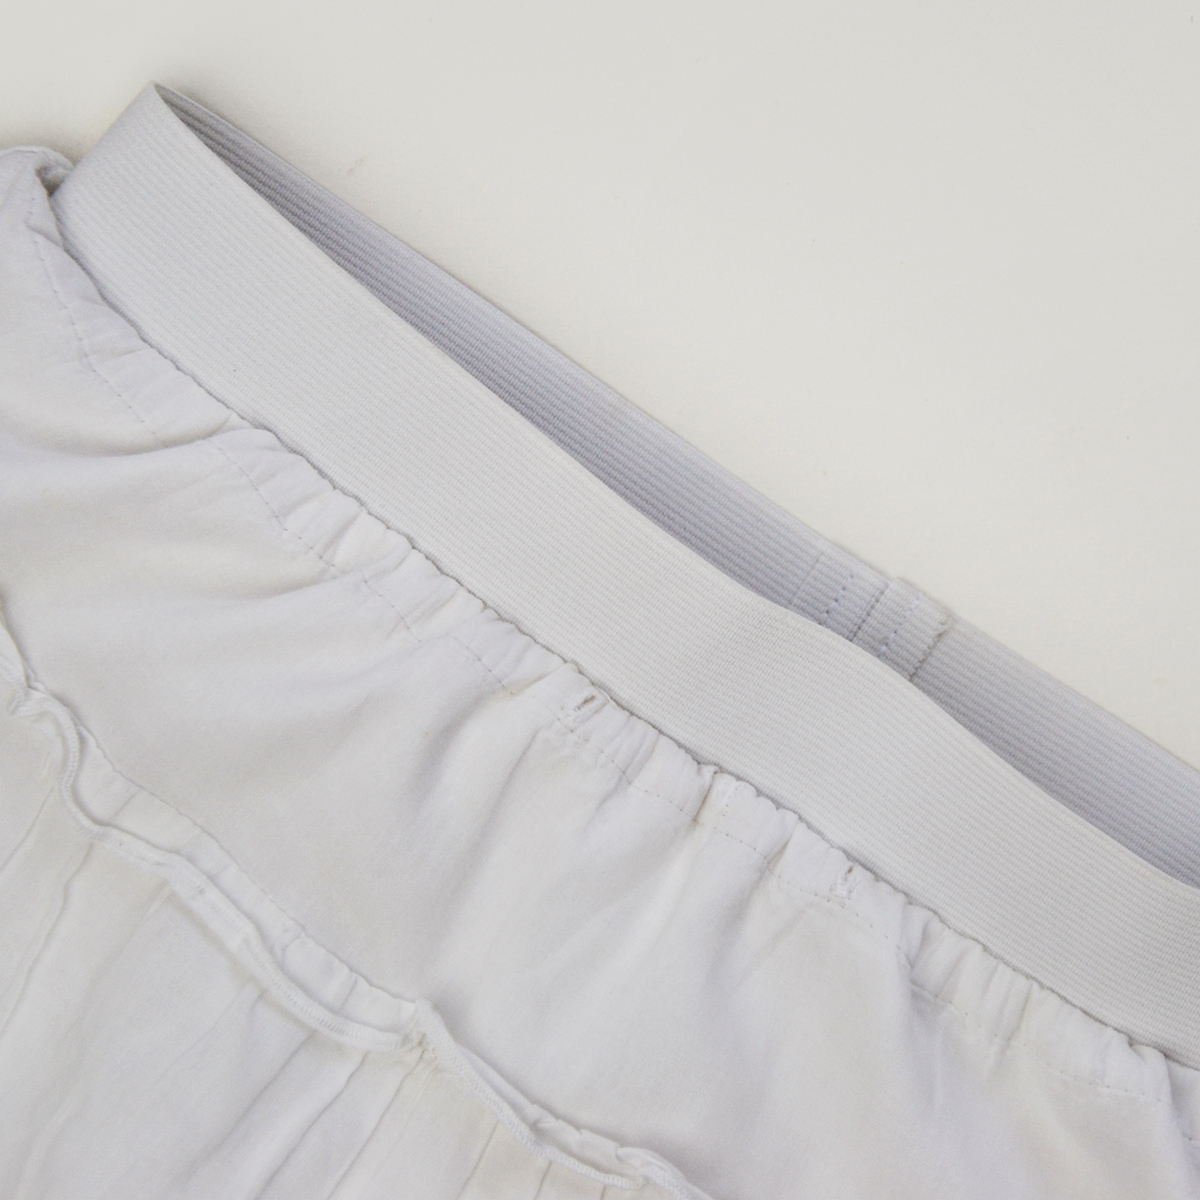 How to Sew an Exposed Elastic Waistband in 5 steps: an easy alternative to fussy zippers and elastic casings! Learn how on www.cucicucicoo.com